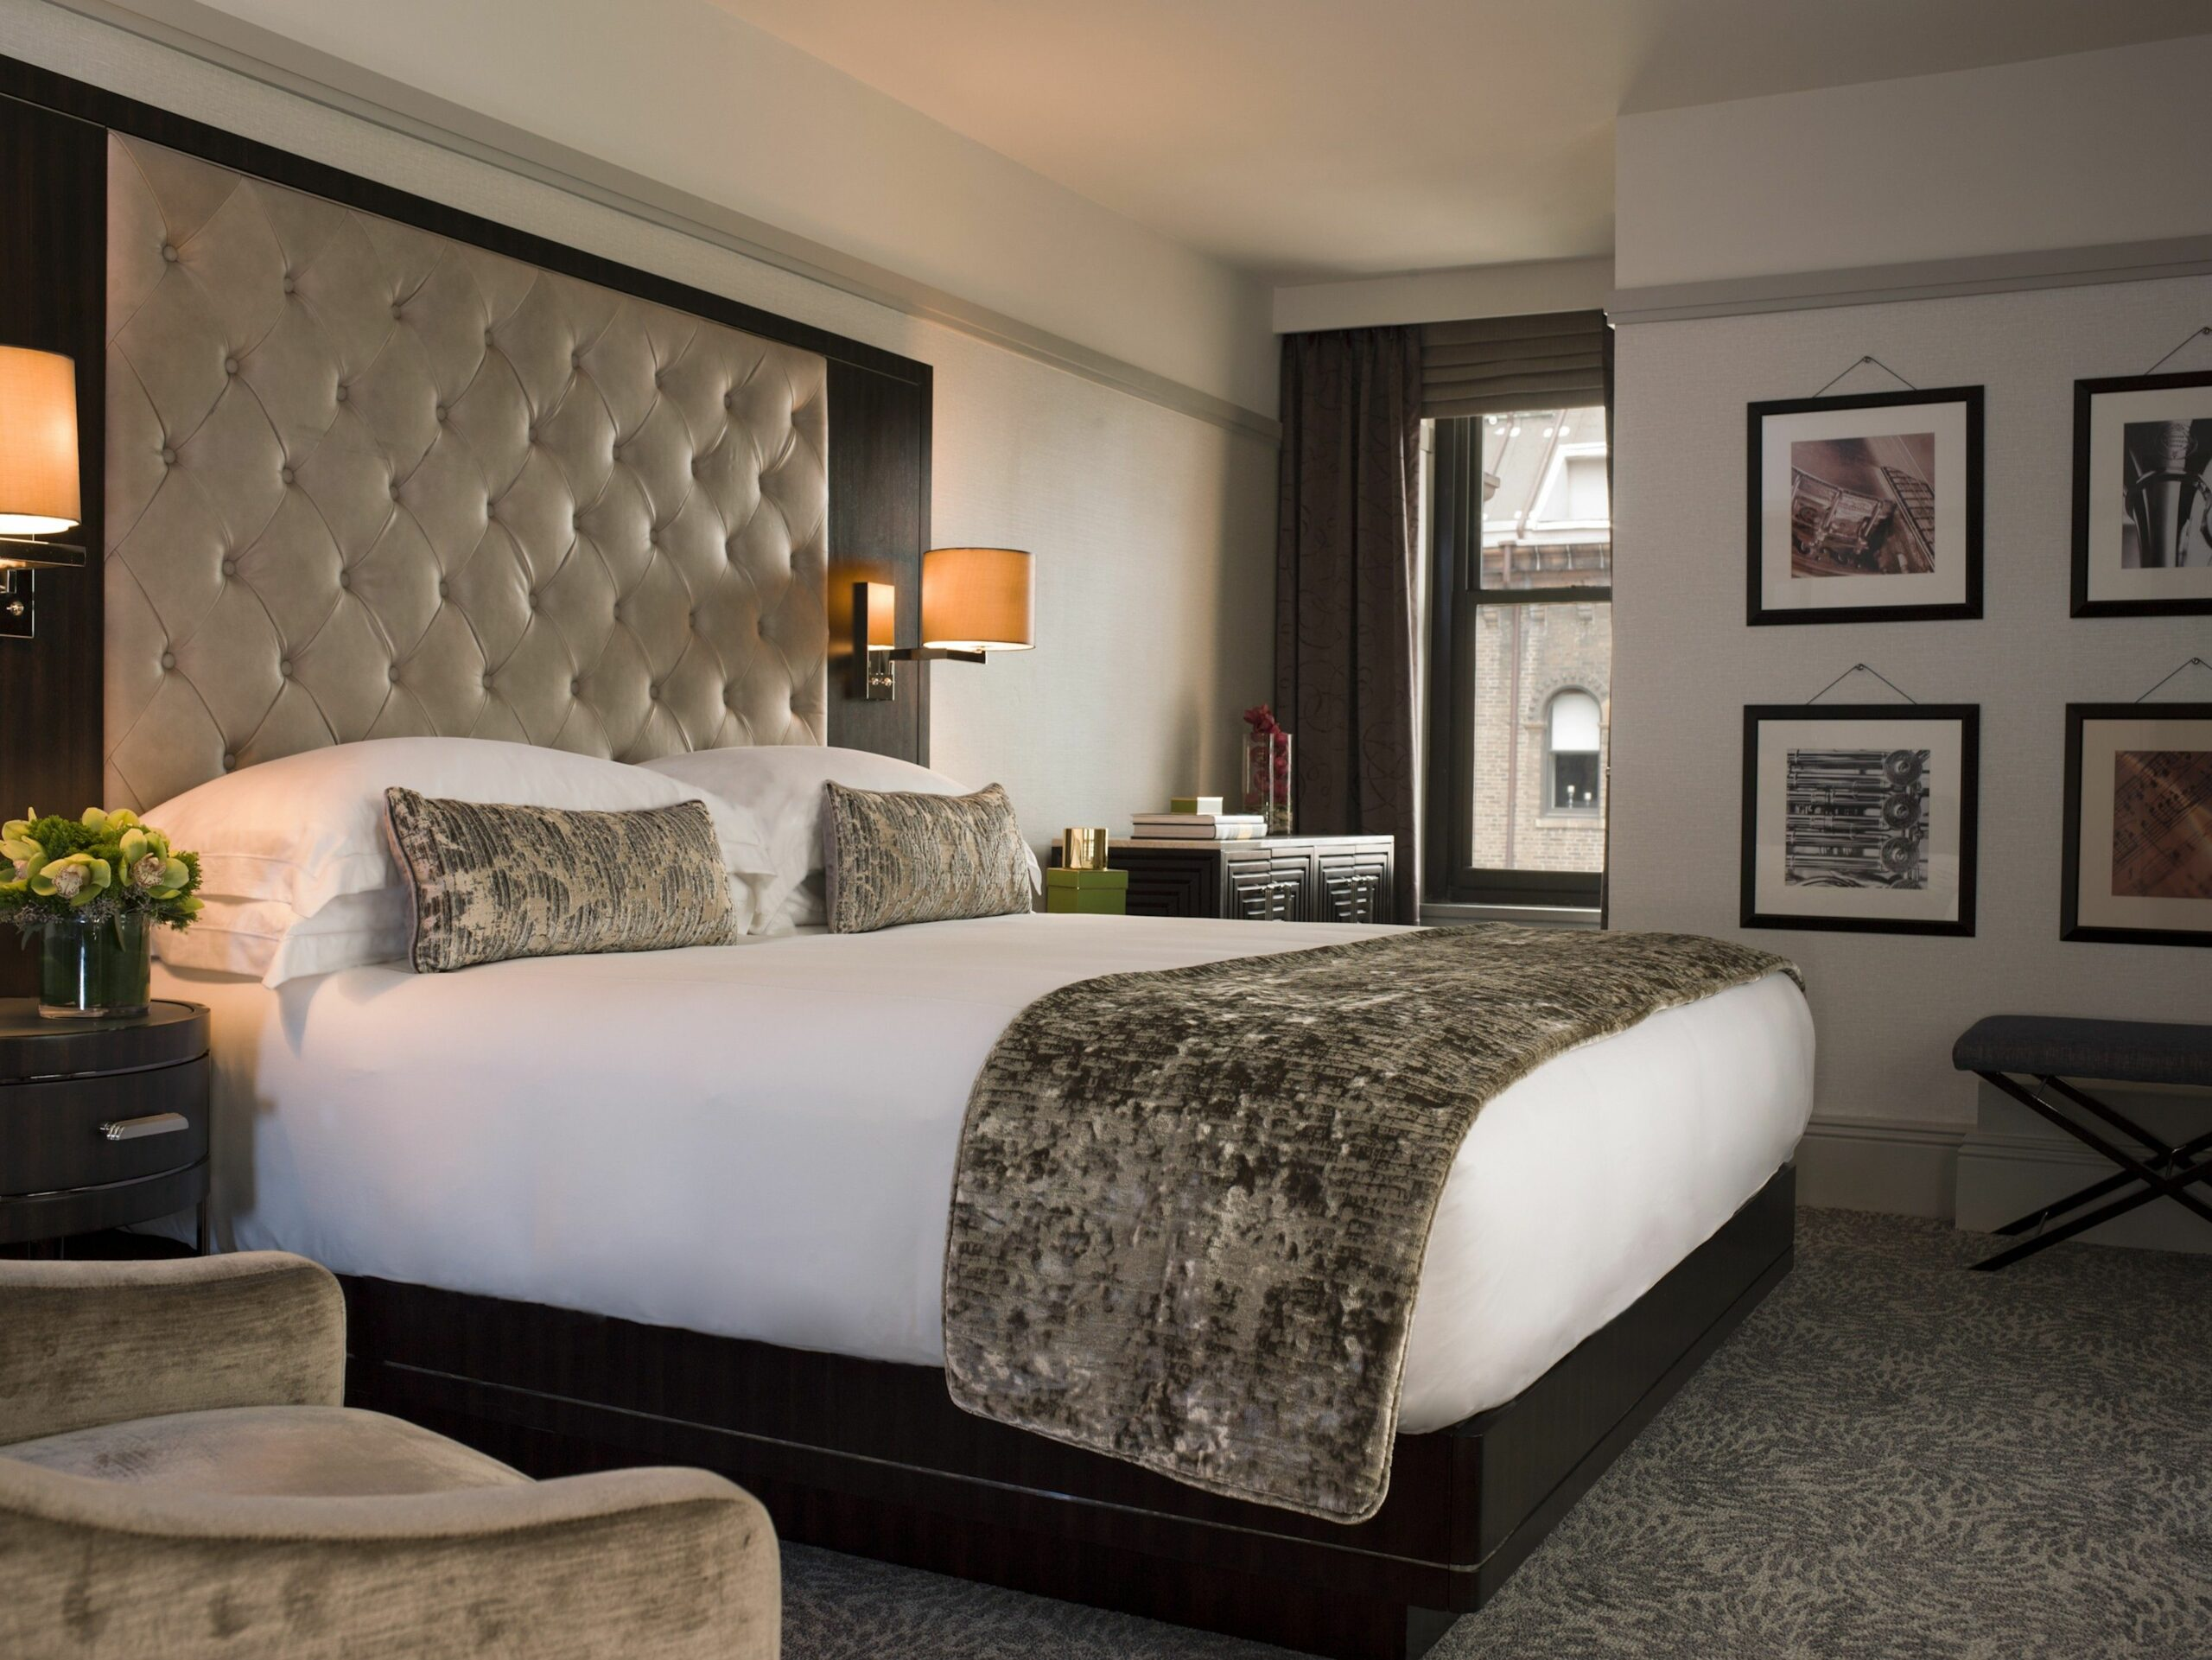 How to Make Your Bedroom Look Like a Hotel Suite